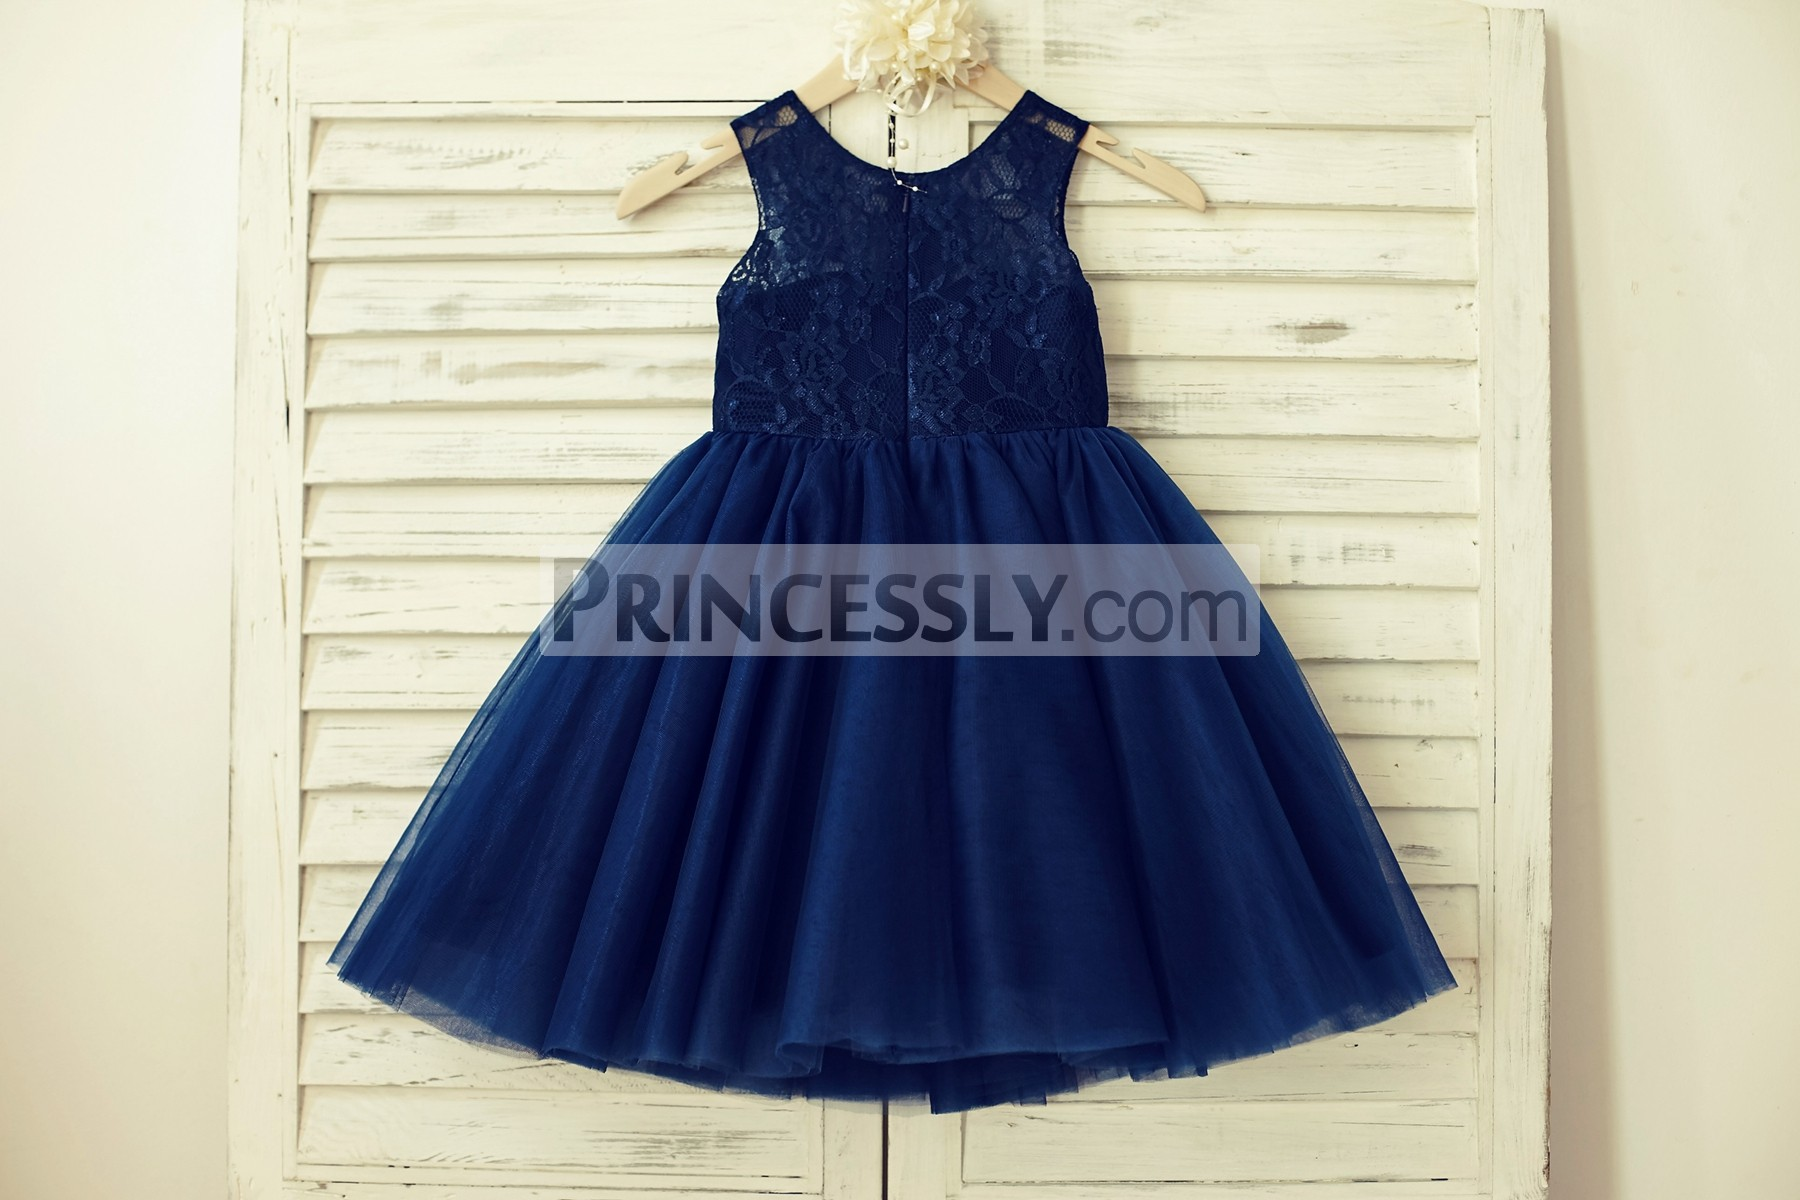 Scoop neck sleeveless navy blue lace tulle wedding baby girl dress